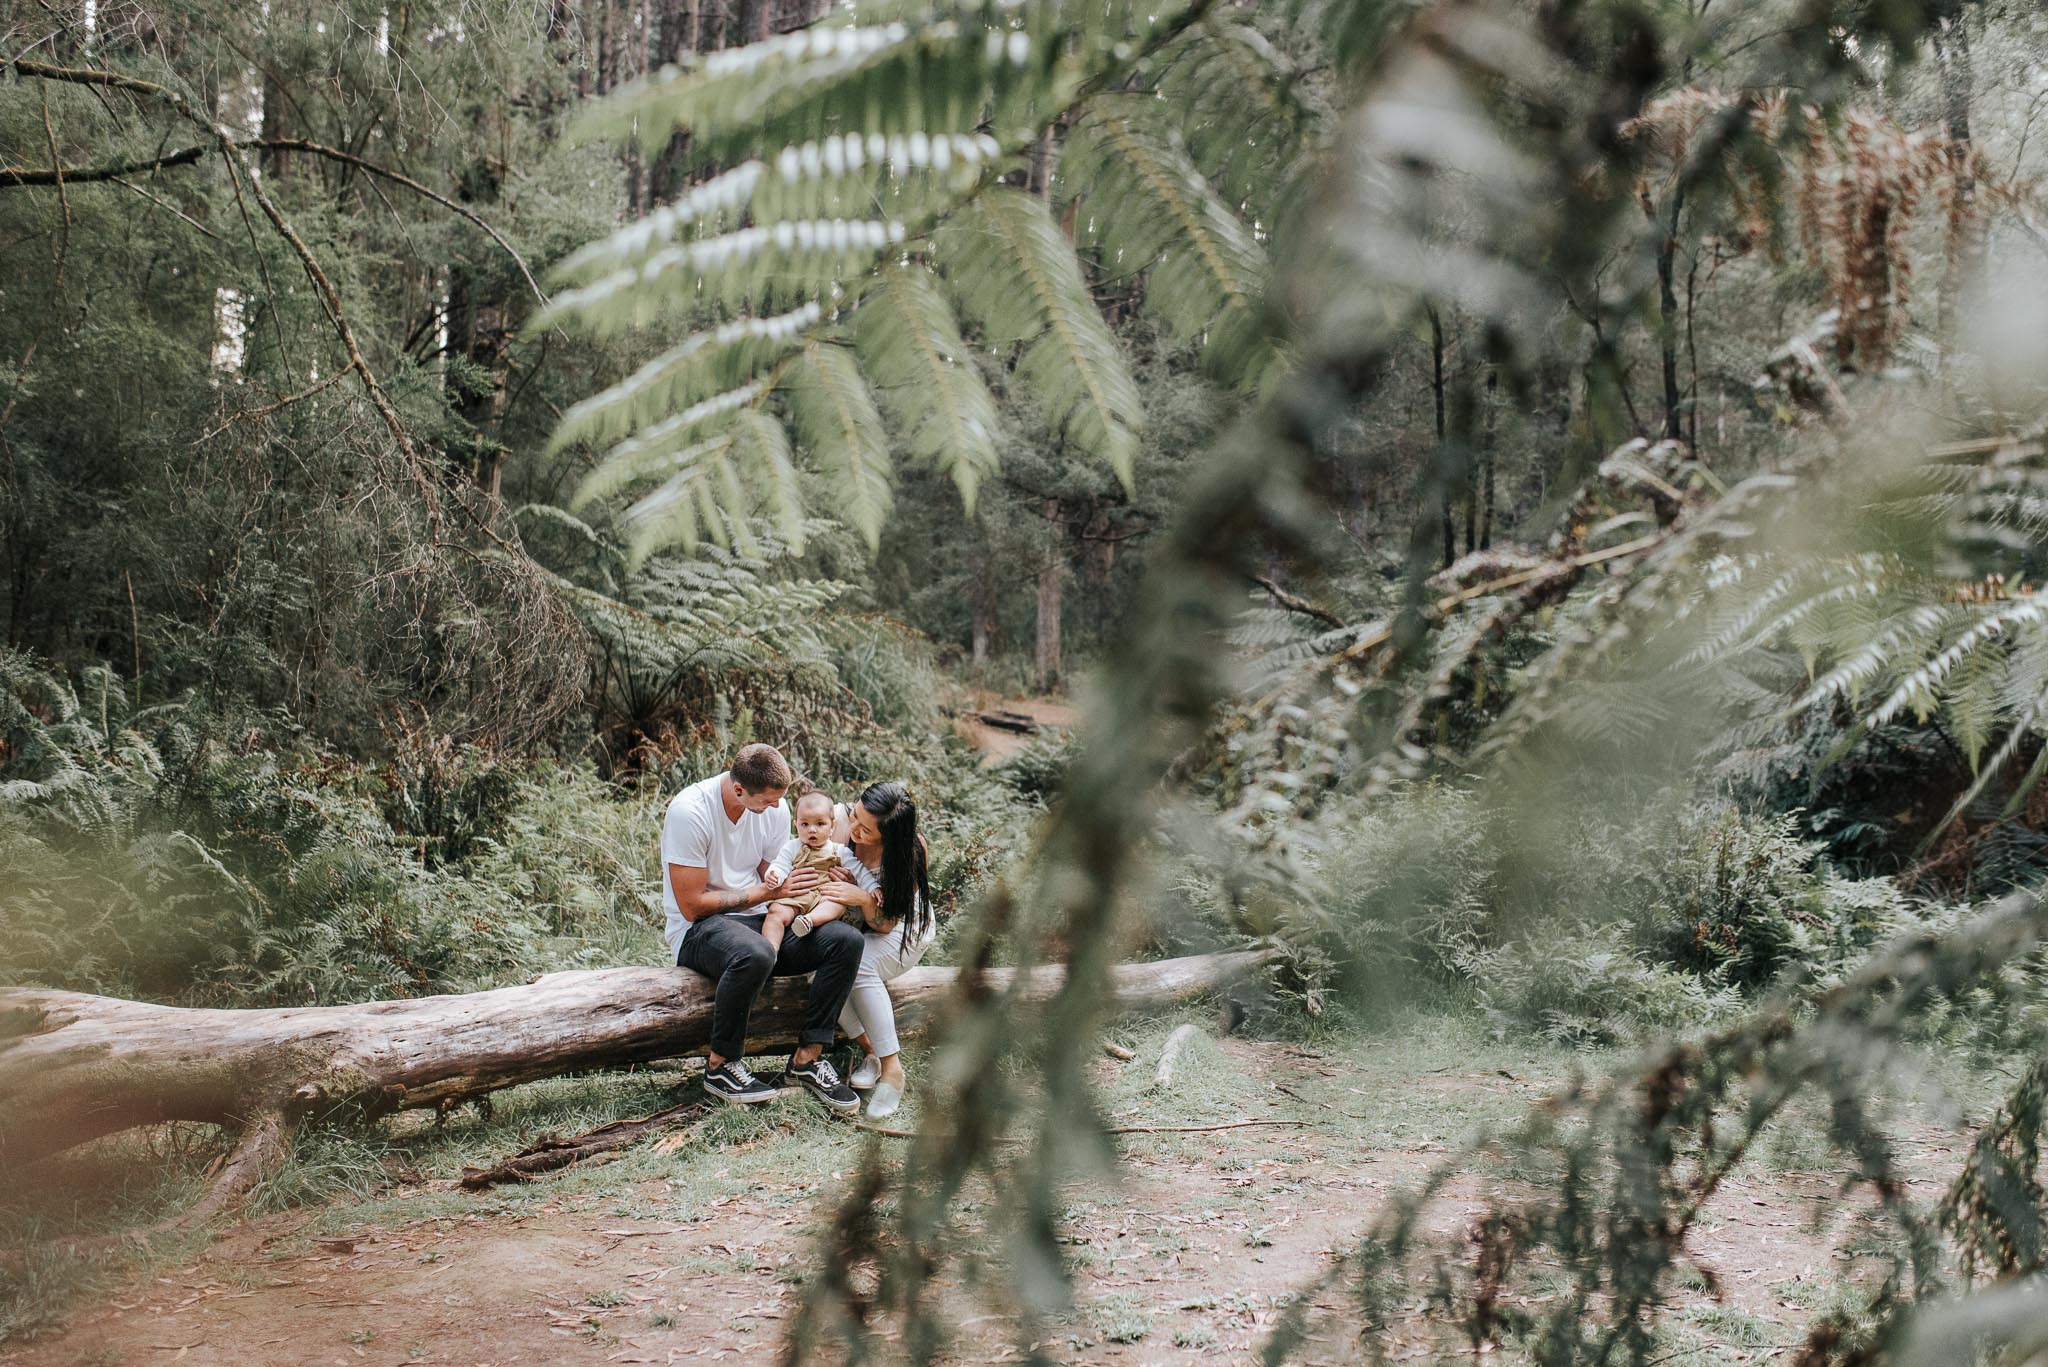 melbourne family photographer, Jess Worrall Photography - Dandenong Ranges